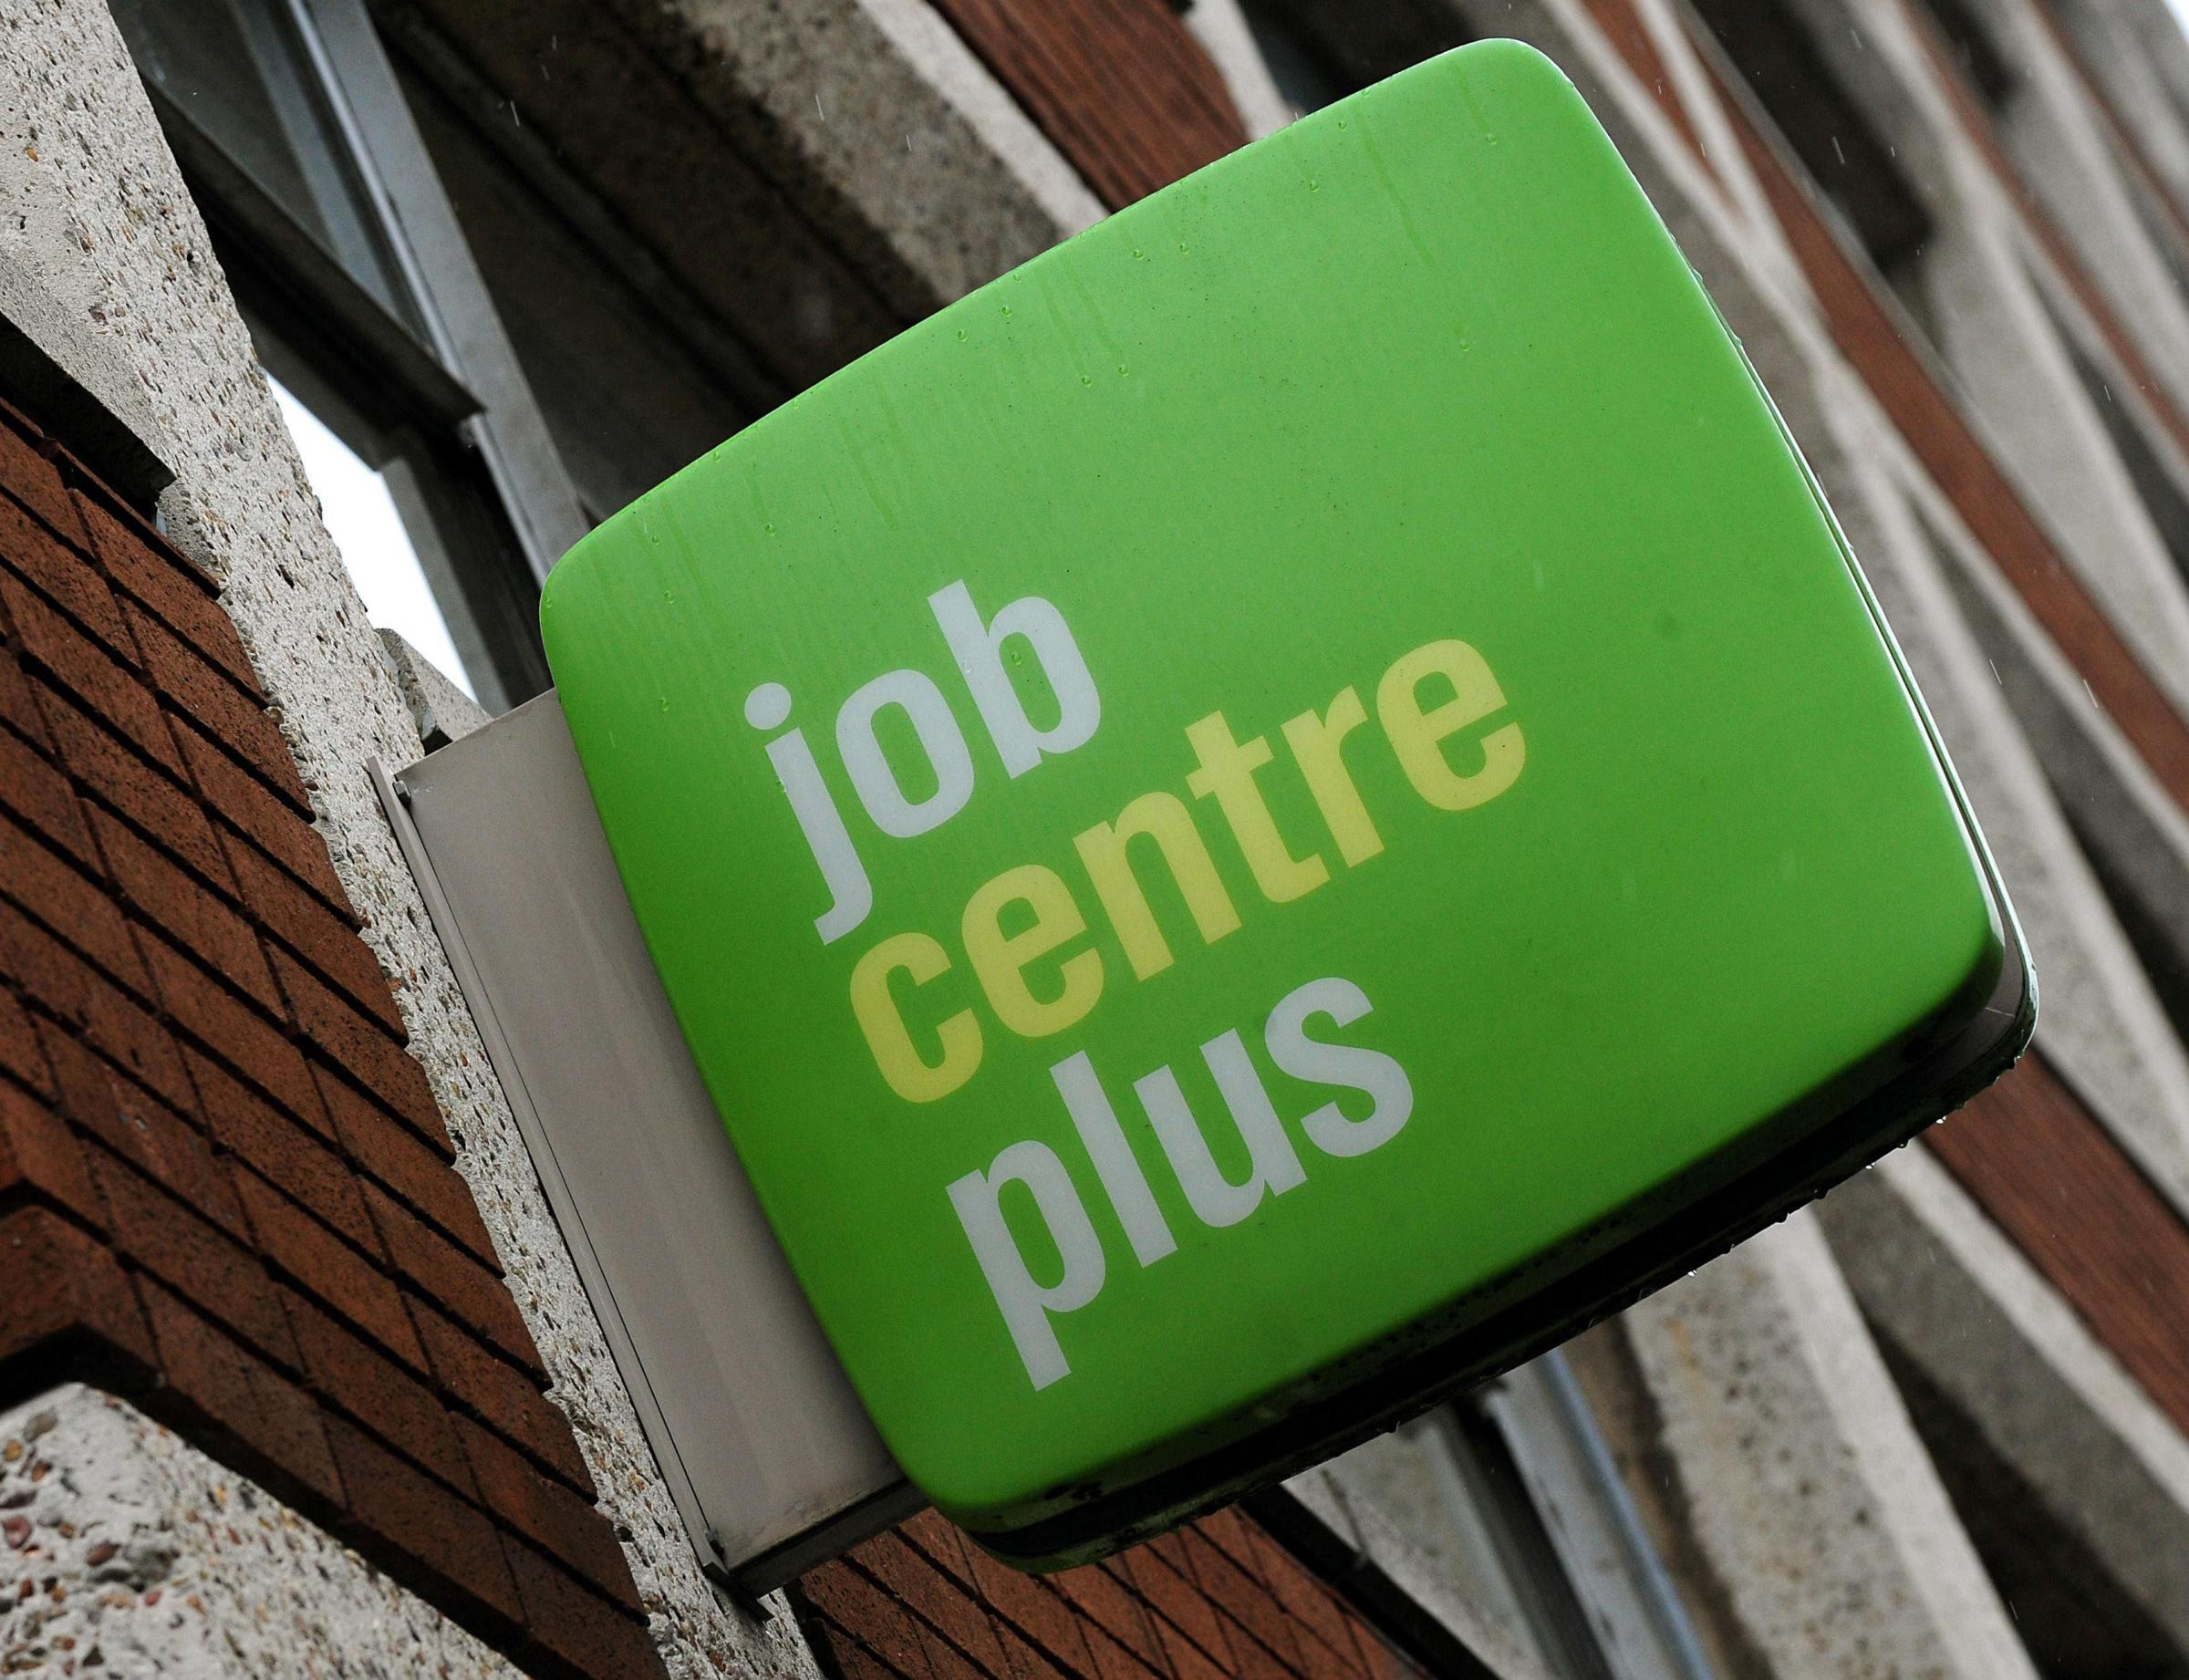 Cumbria hit by second consecutive unemployment rise